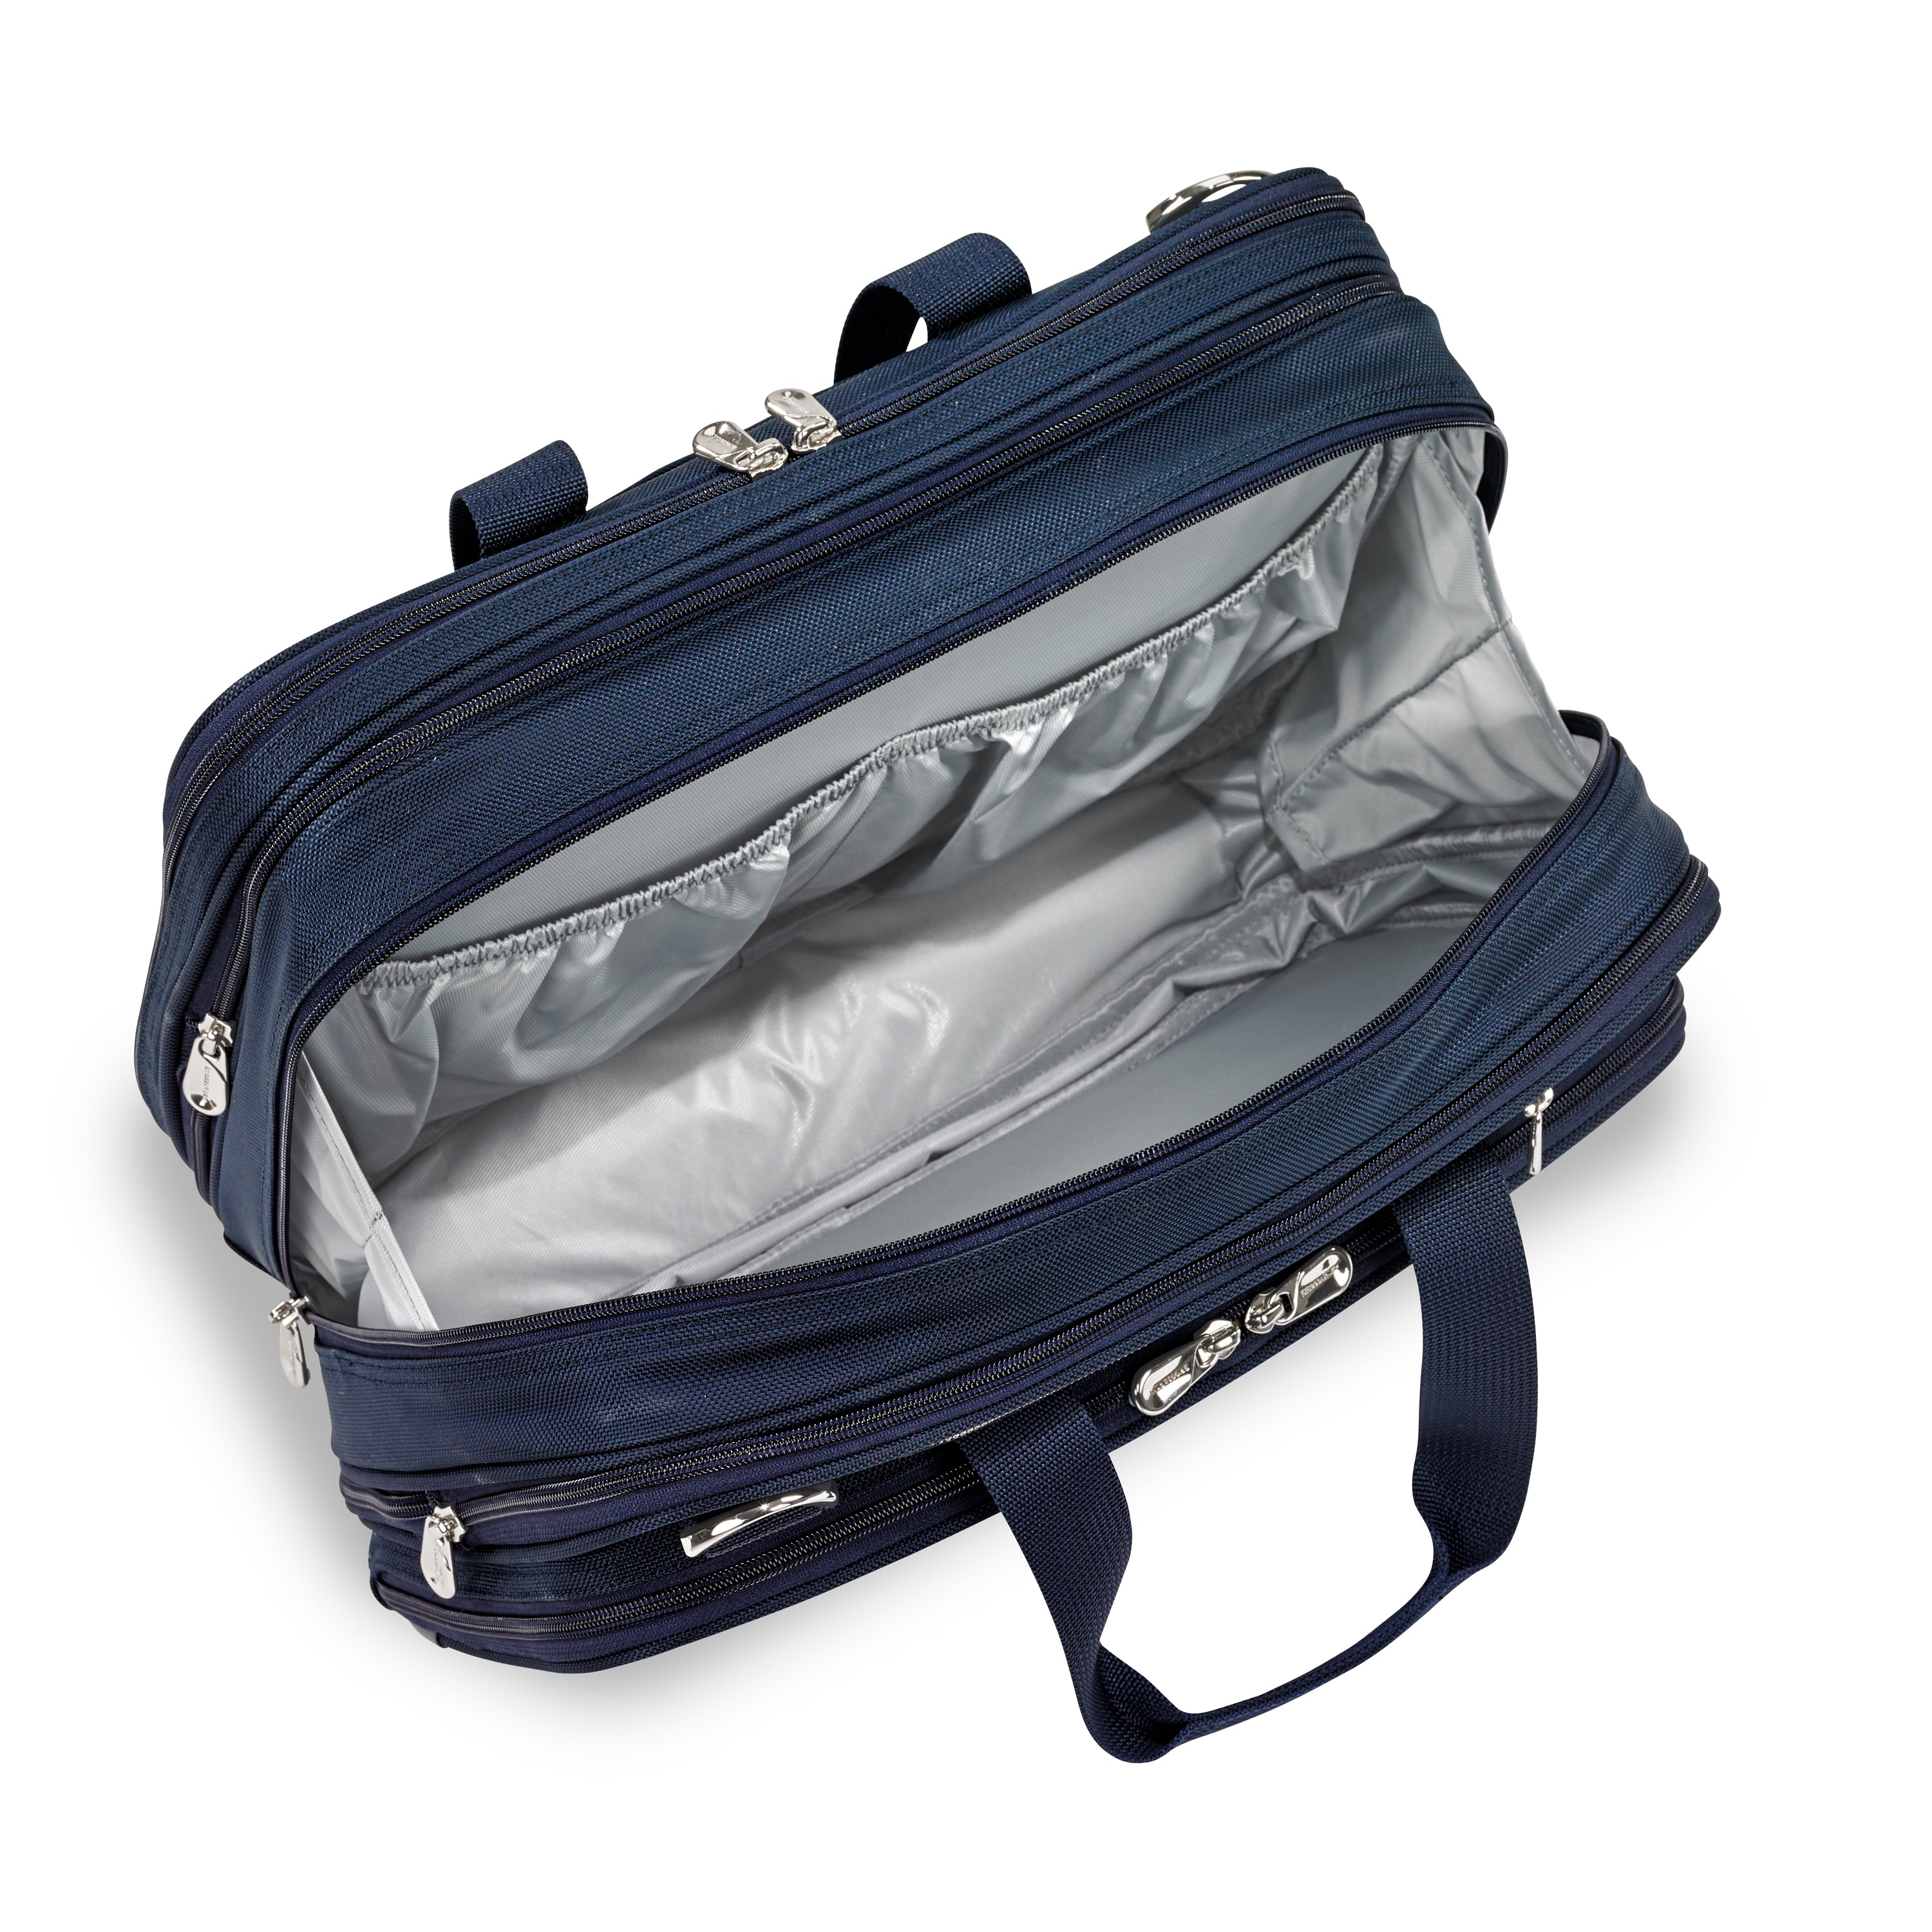 "BRIGGS & RILEY BASELINE 11"" EXPANDABLE CABIN BAG - NAVY 